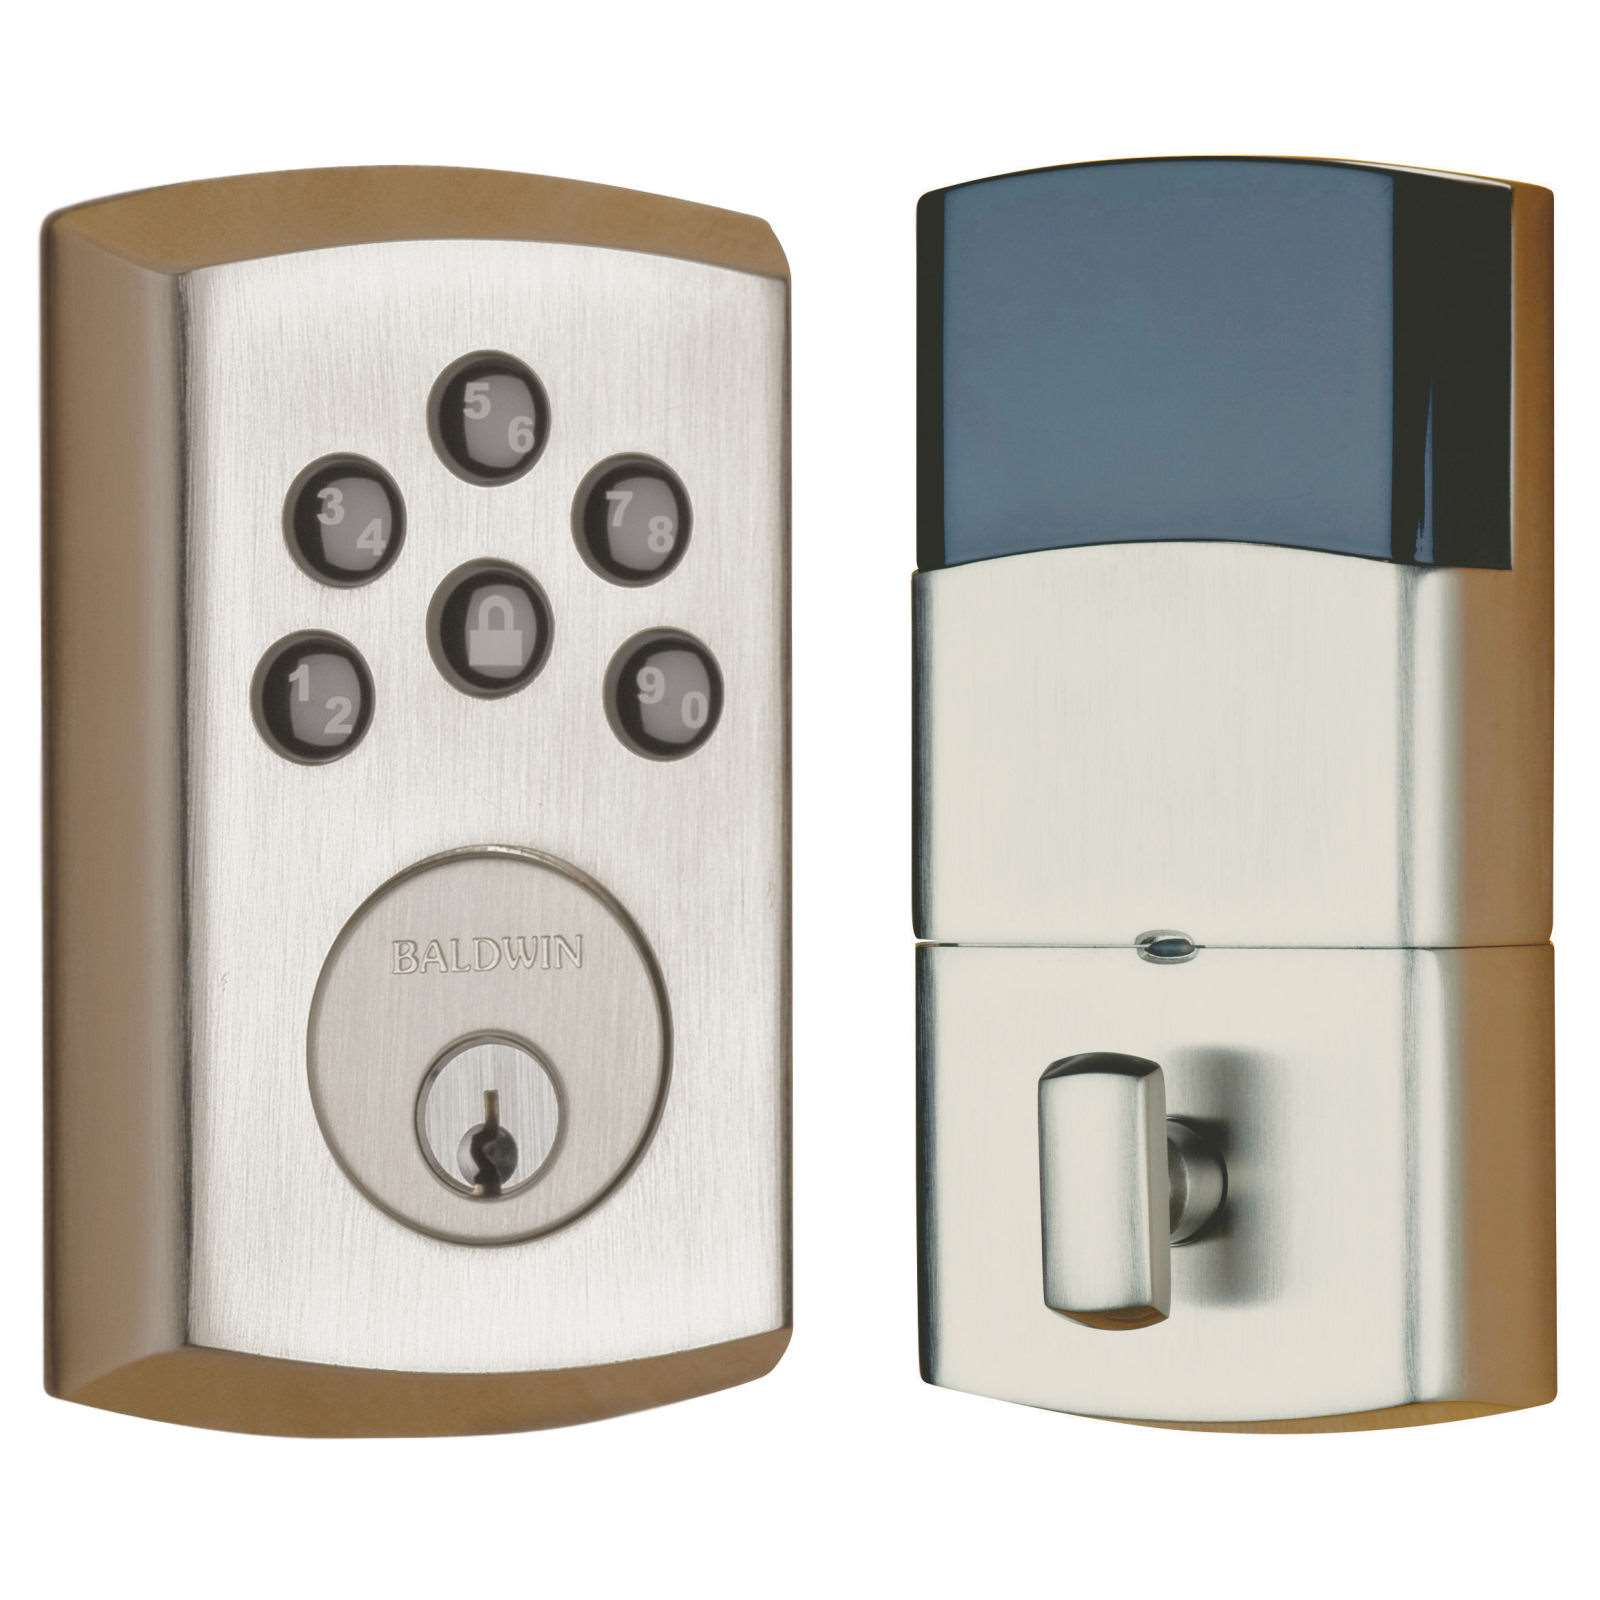 Baldwin Soho 8285 Electronic Deadbolt Gokeyless